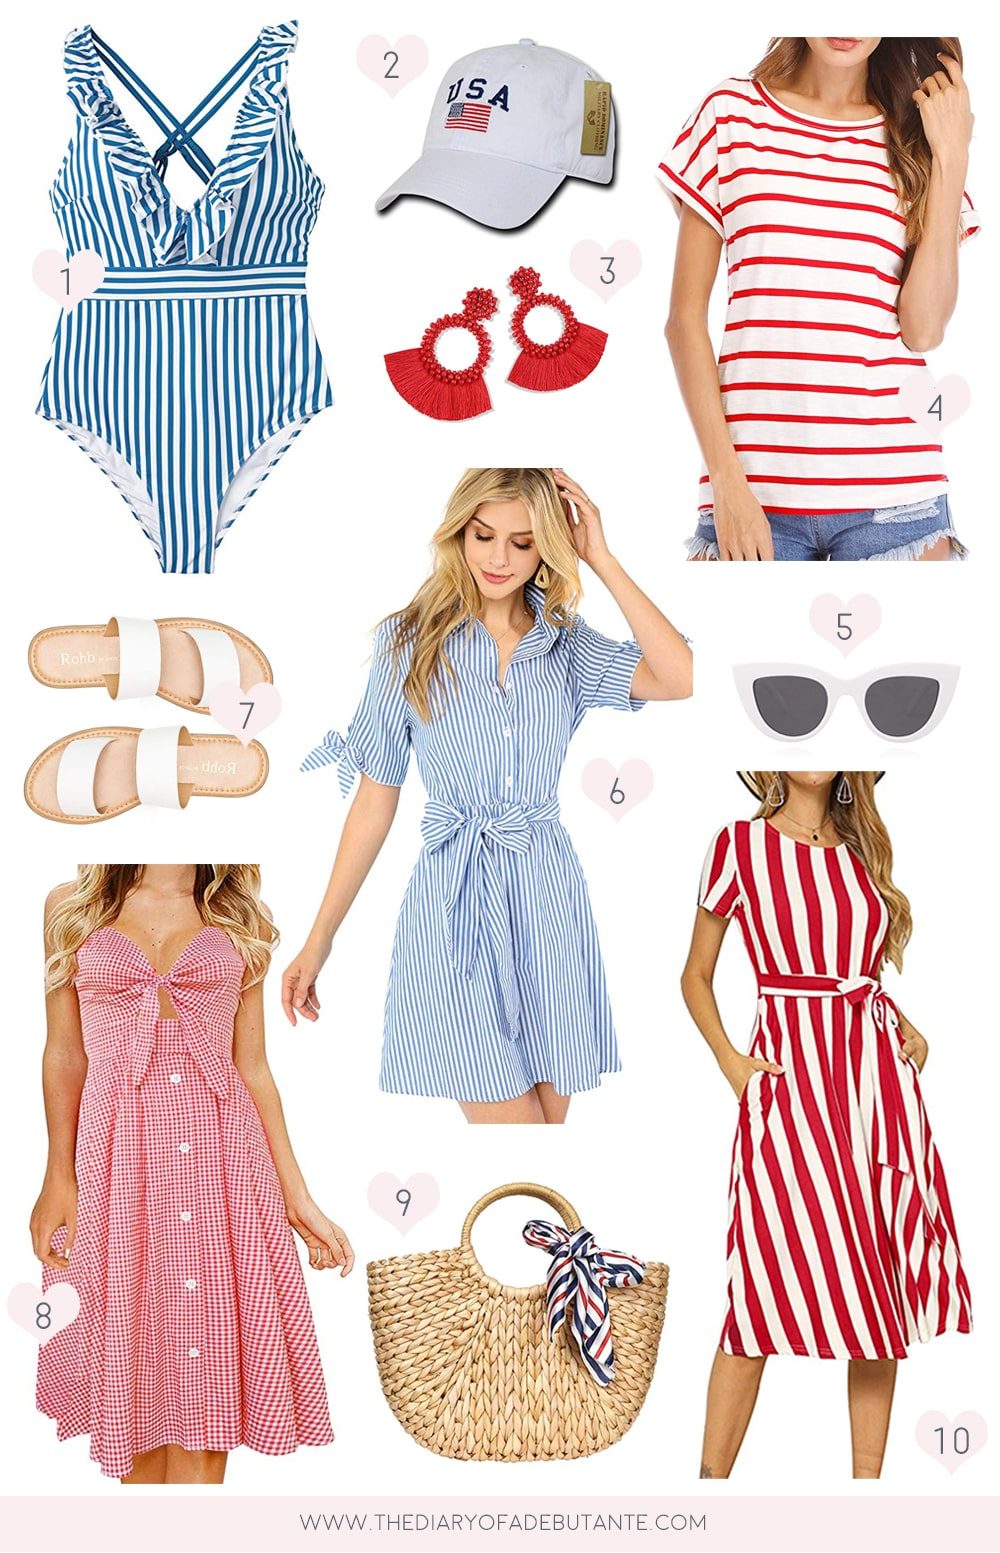 Affordable fashion blogger Stephanie Ziajka shares her top 4th of July Style Picks under $50 on Diary of a Debutante